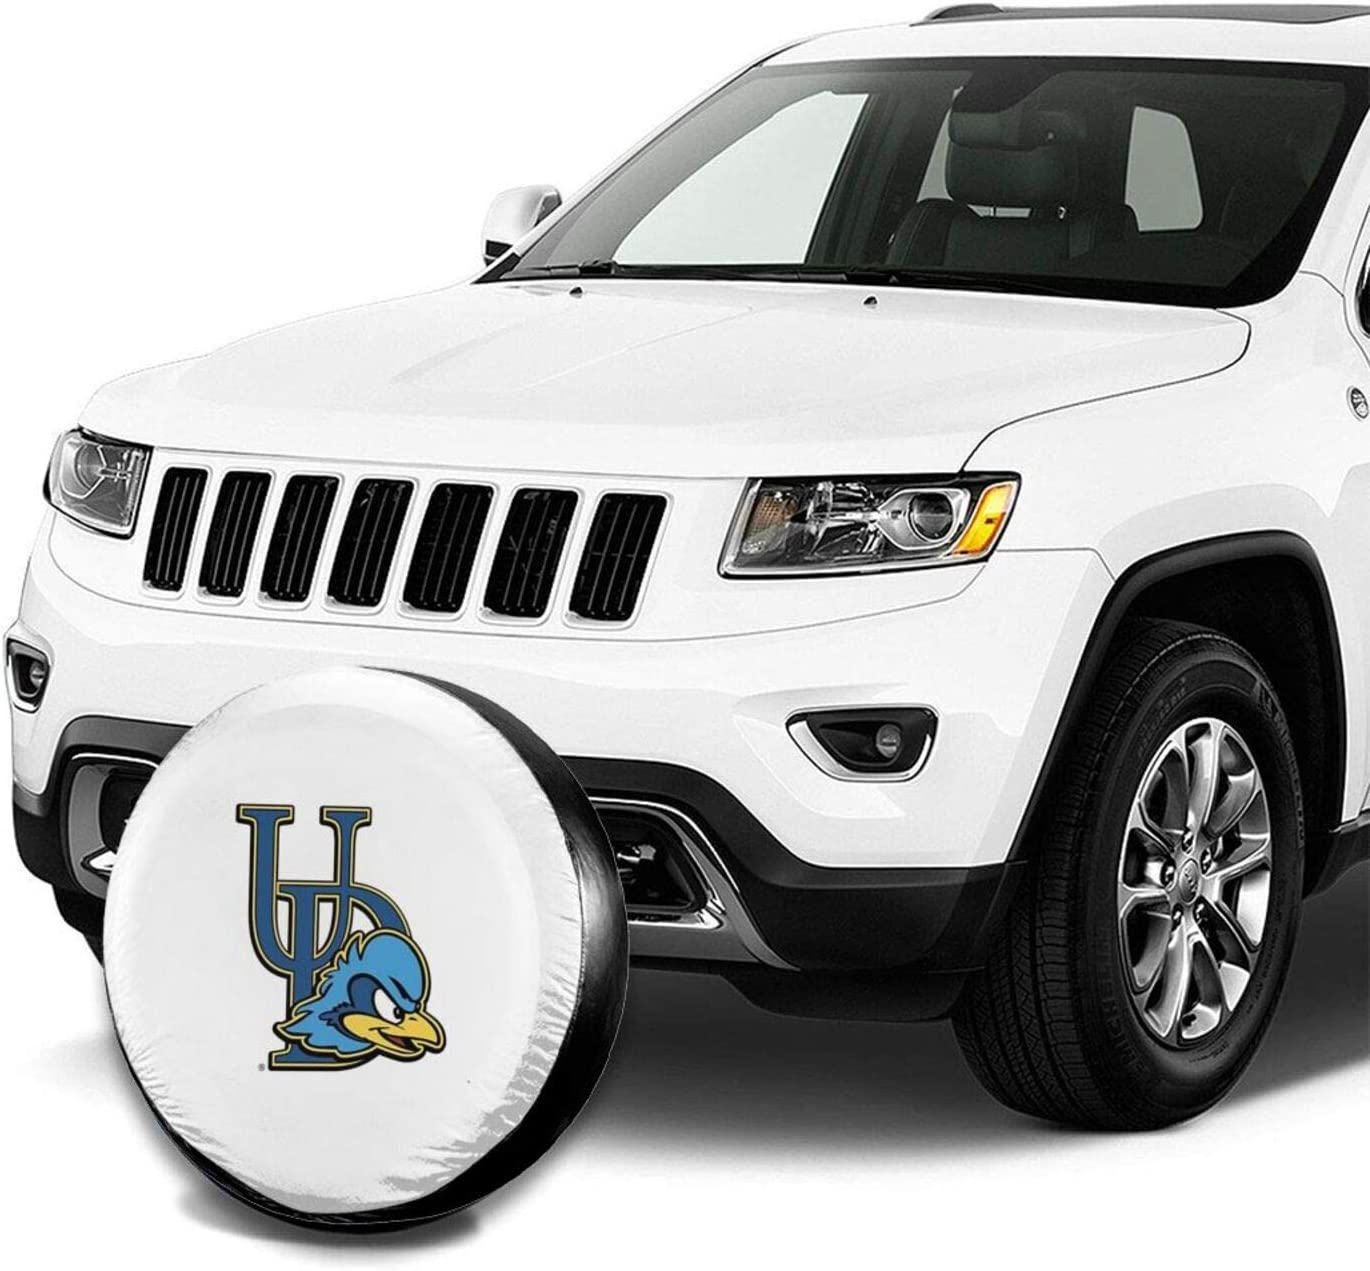 Yamike University of Delaware Spare Tire Cover Potable Universal Wheel Covers Powerful Waterproof Tire Cover 14-17 in